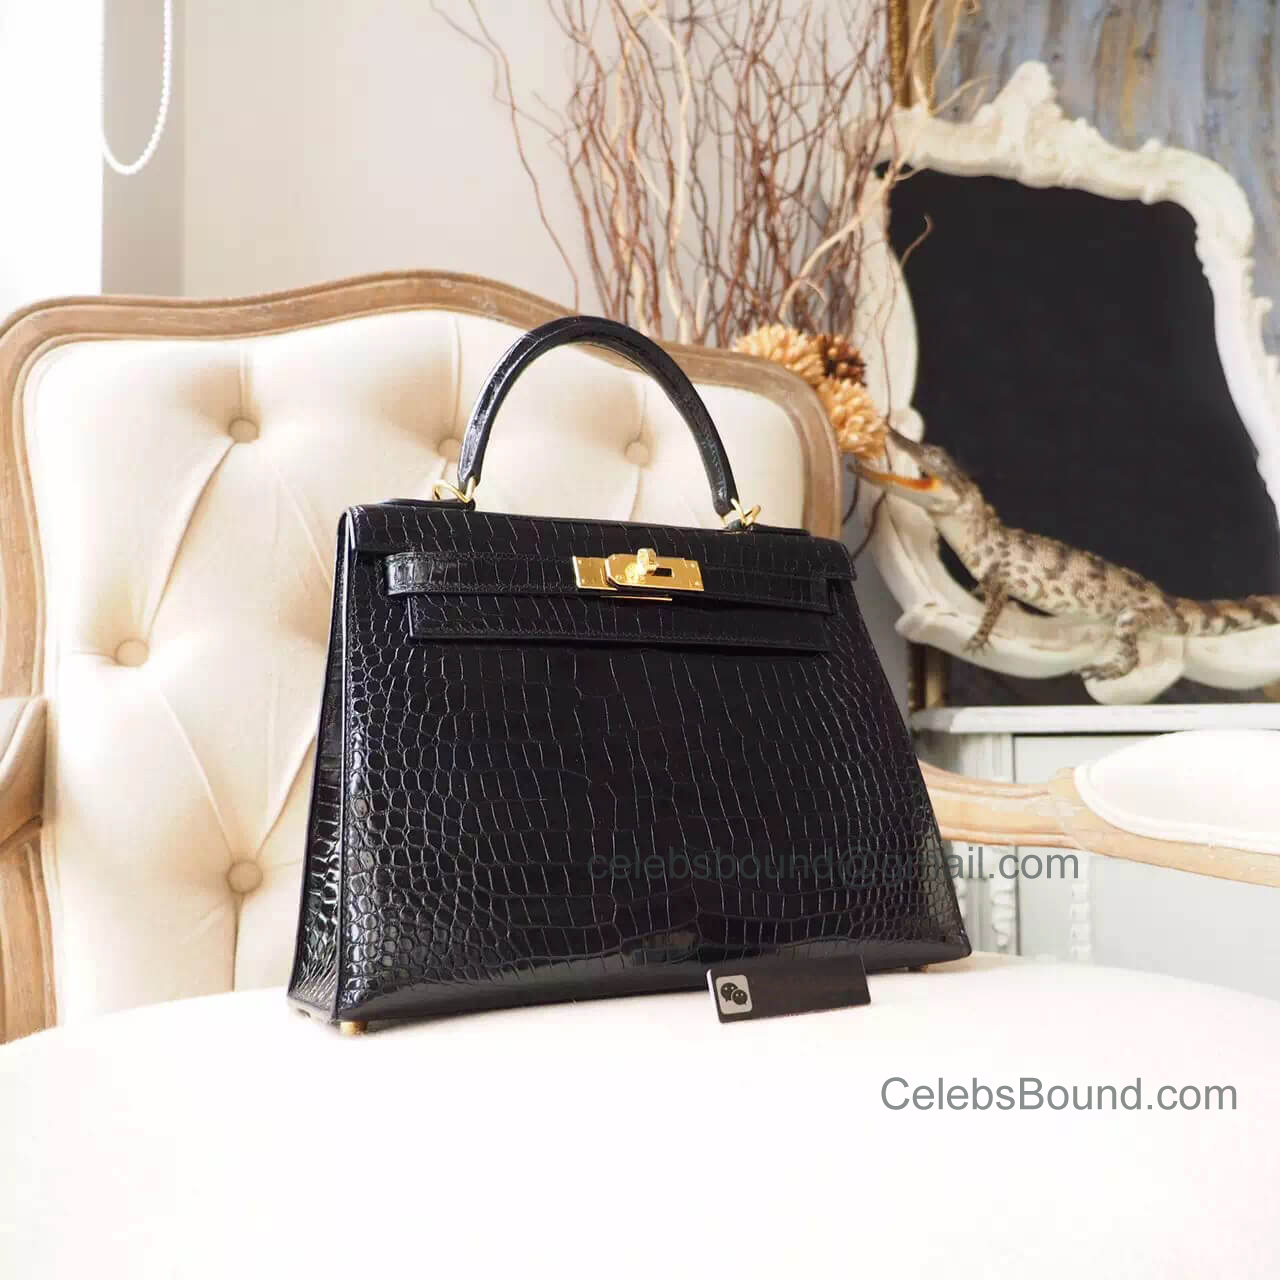 Replica Hermes Kelly 28 Bag in ck89 Noir Shiny Porosus Croc GHW